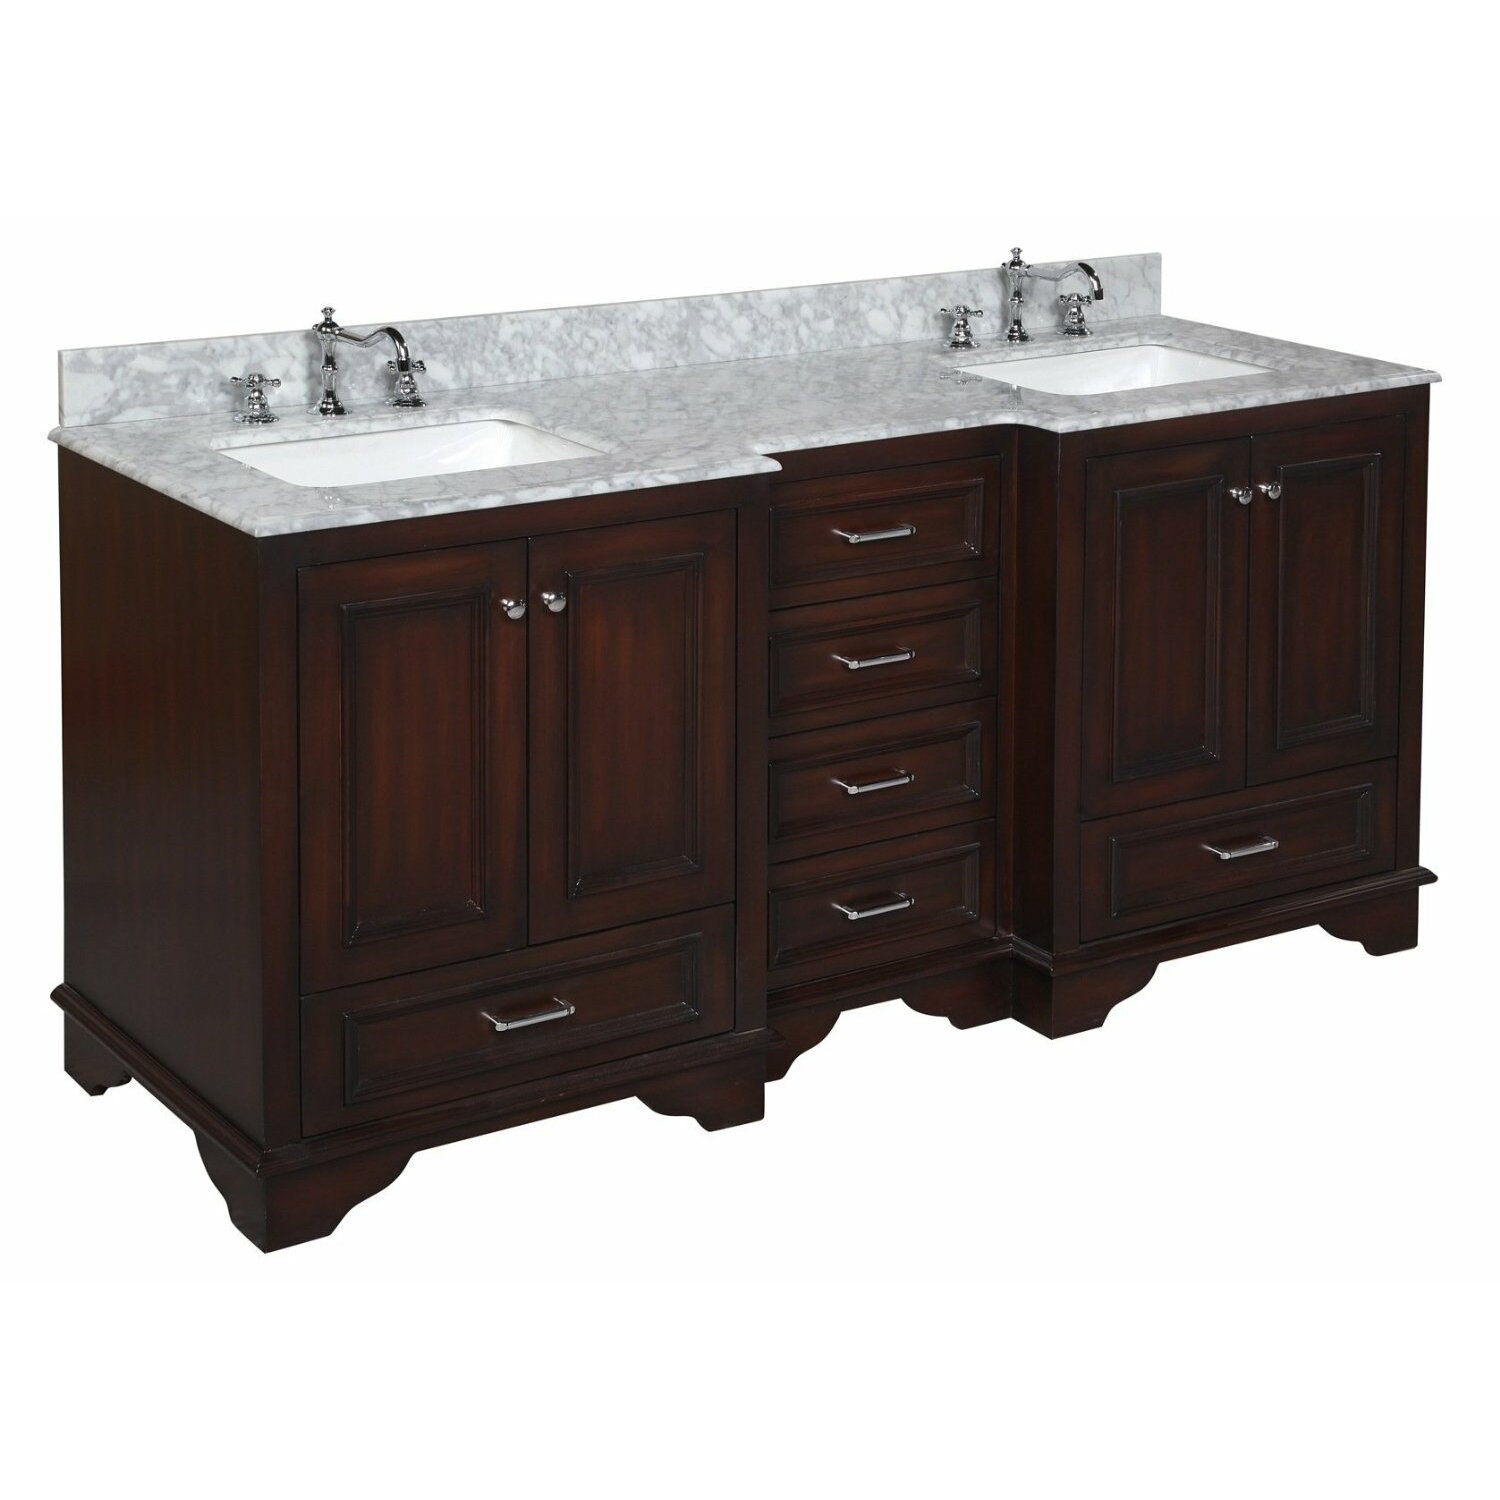 Kbc Nantucket 72 Double Bathroom Vanity Set Reviews Wayfair